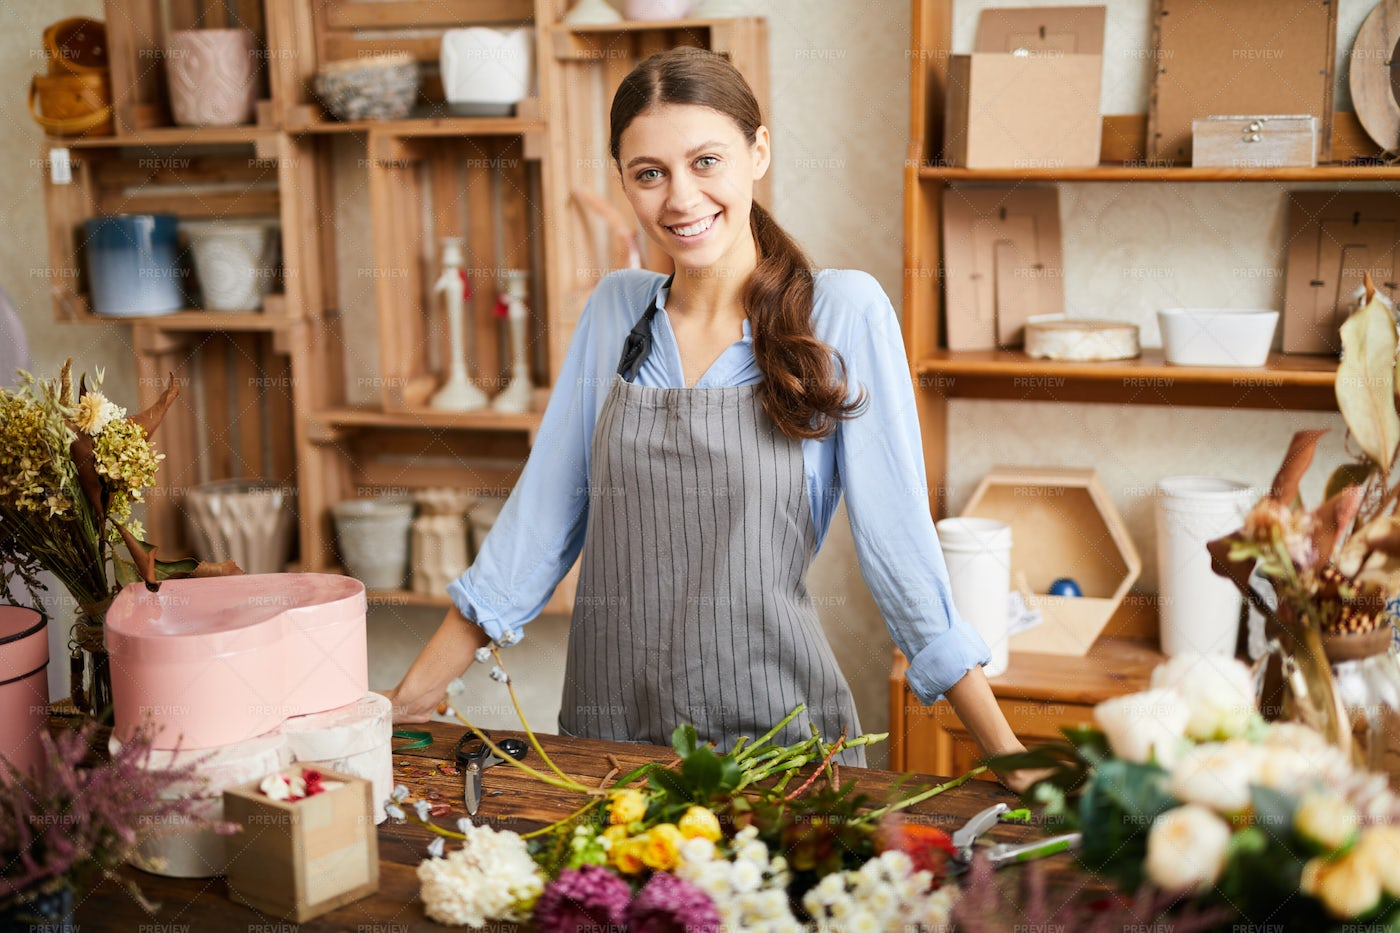 Smiling Florist In Shop: Stock Photos